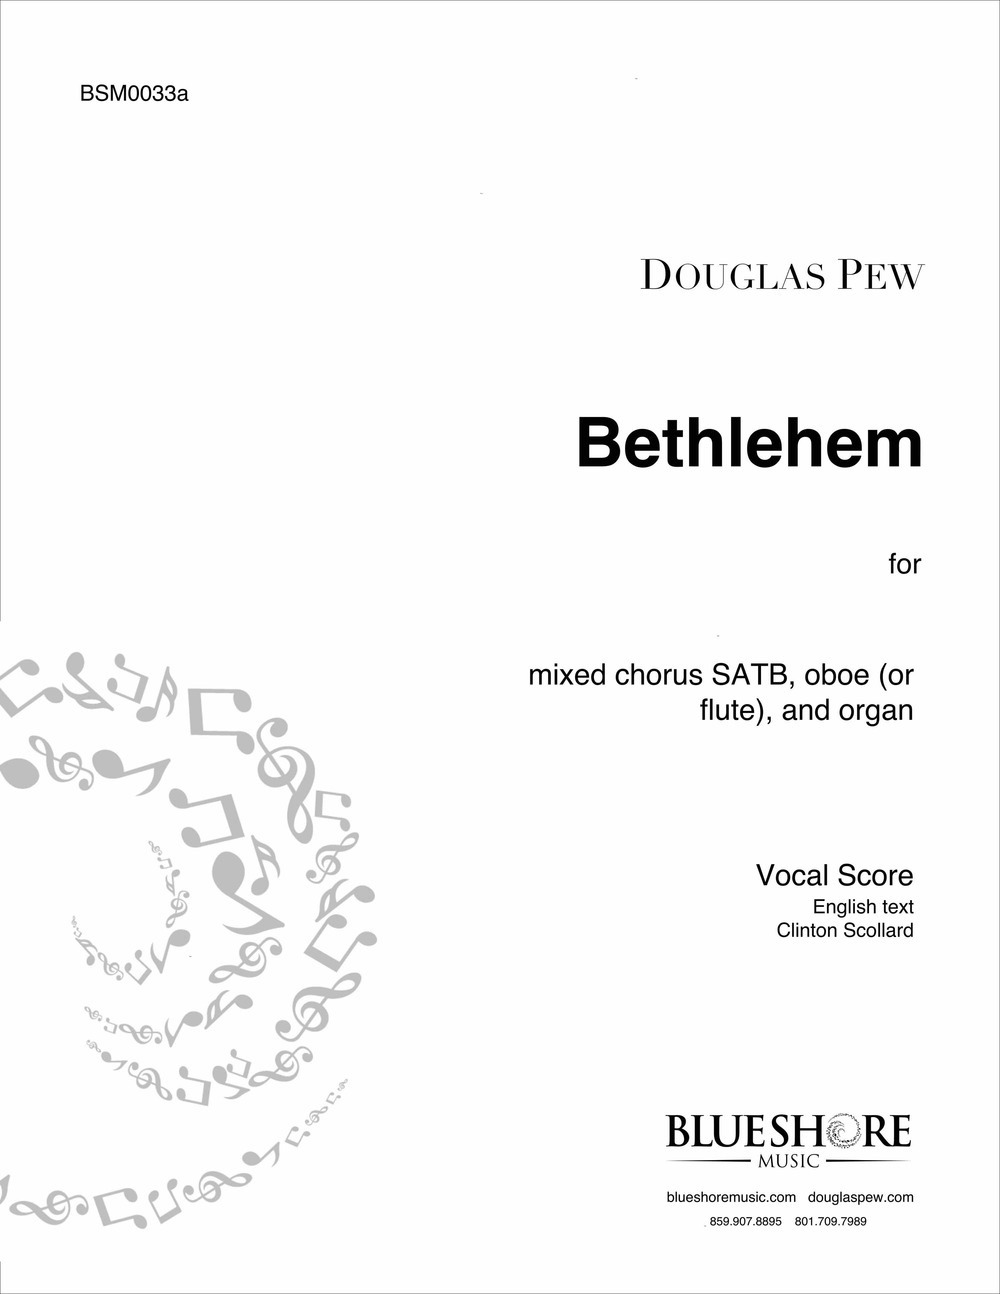 Bethlehem   - Christmas Carol for SATB, Oboe (or Flute), and Organ